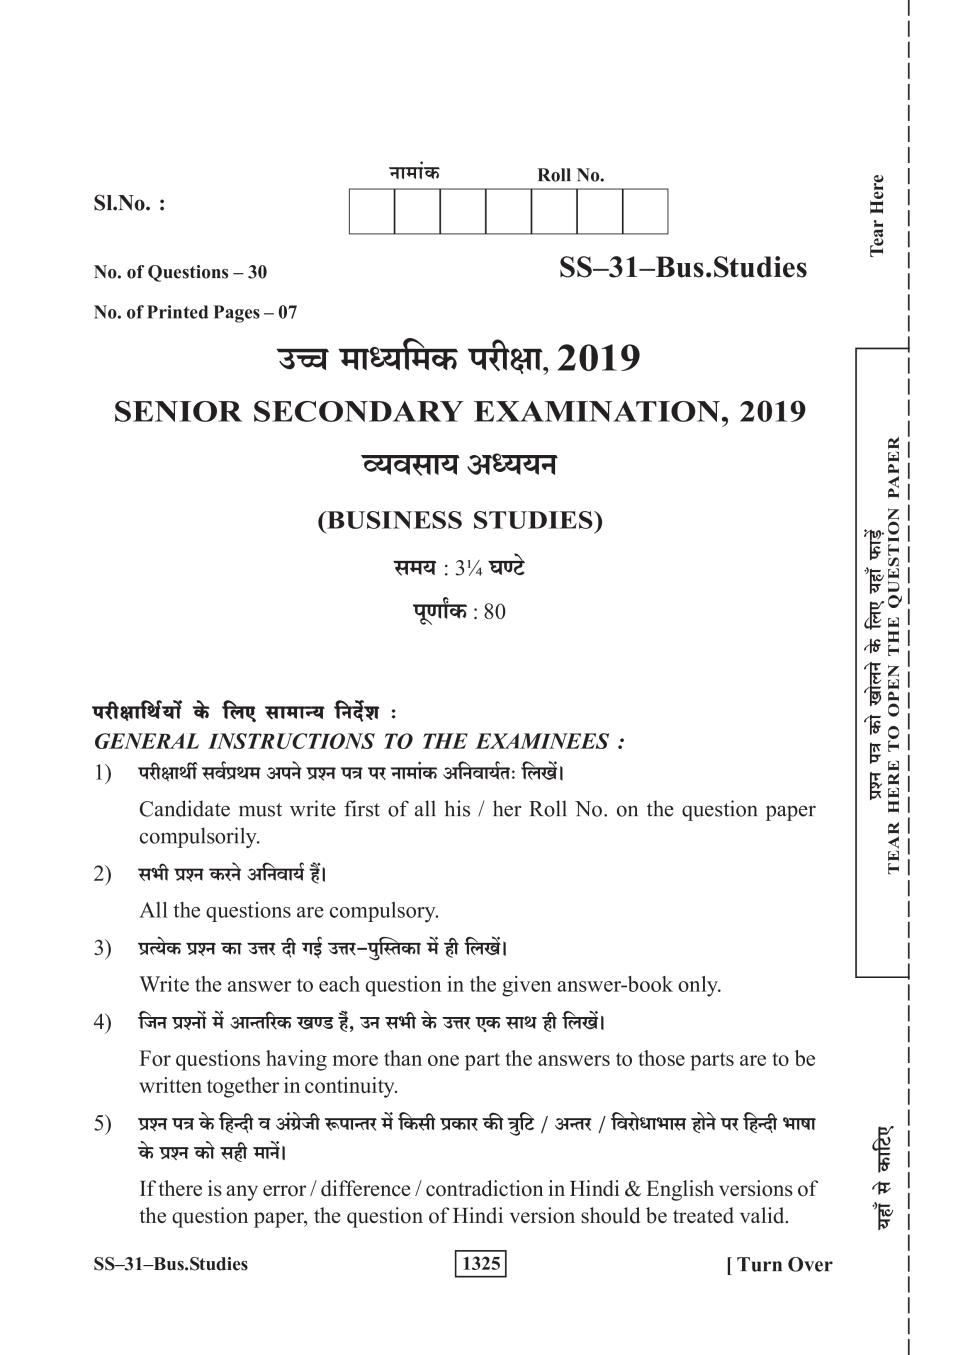 Rajasthan Board Sr. Secondary Bus. Studies Question Paper